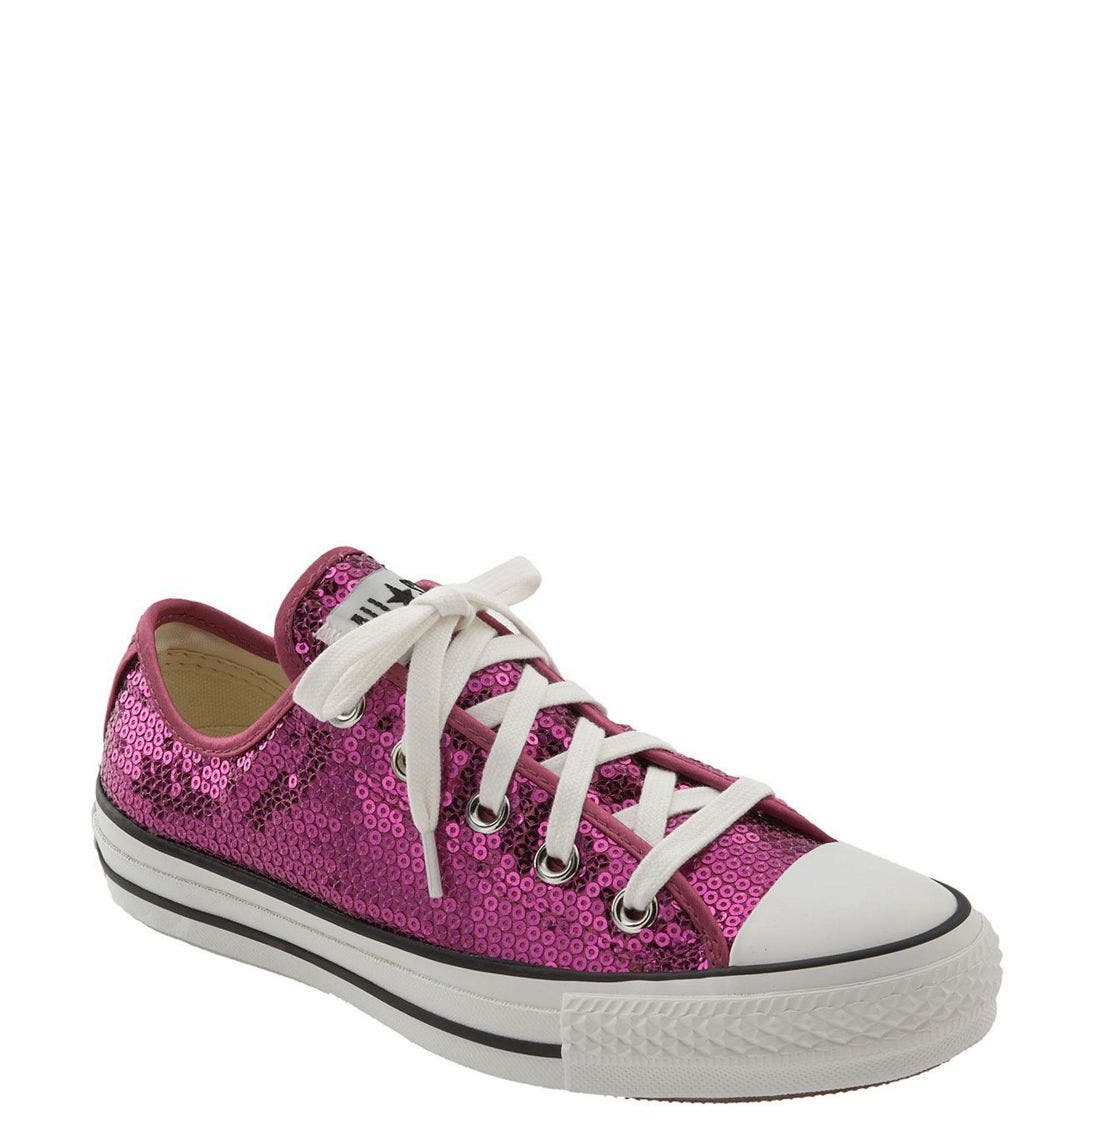 CONVERSE Chuck Taylor<sup>®</sup> Sequined Sneaker, Main, color, 606